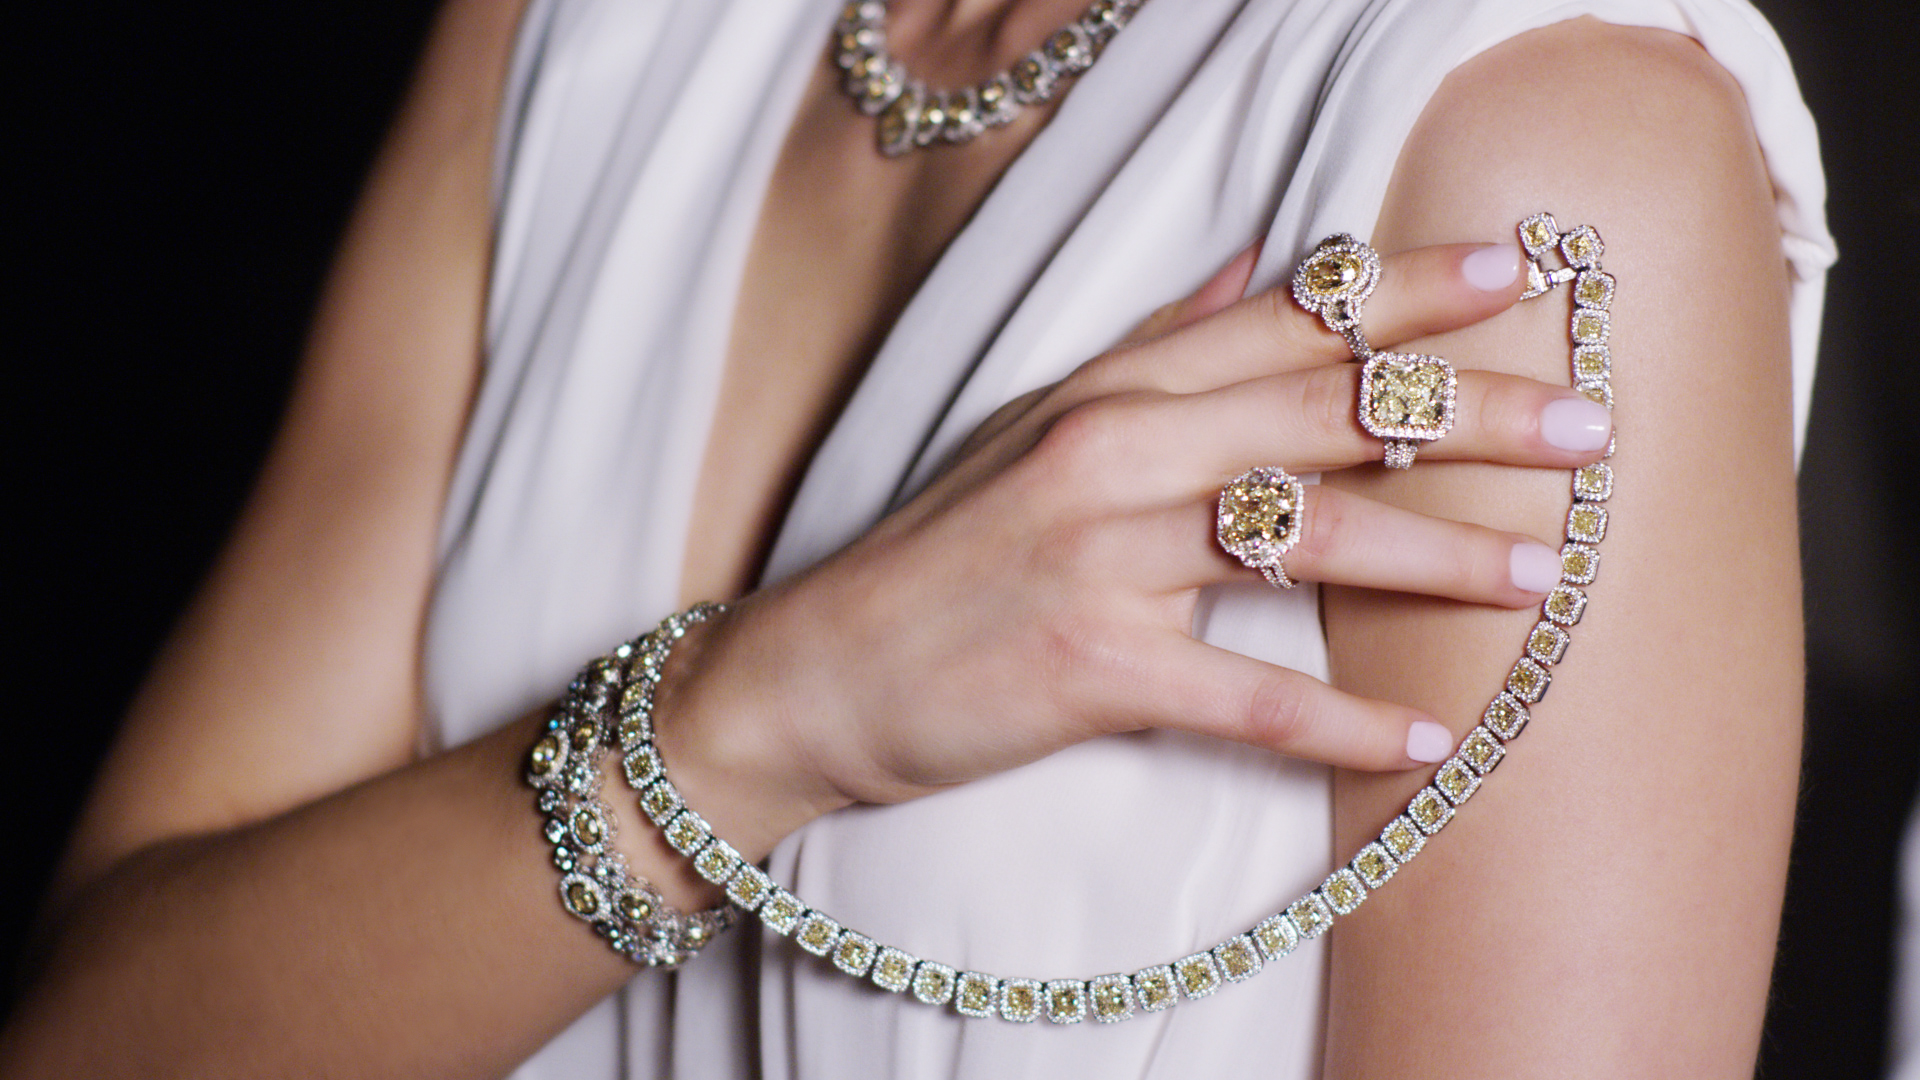 image of a woman holding several karats of white and yellow diamond rings, necklace and bracelet